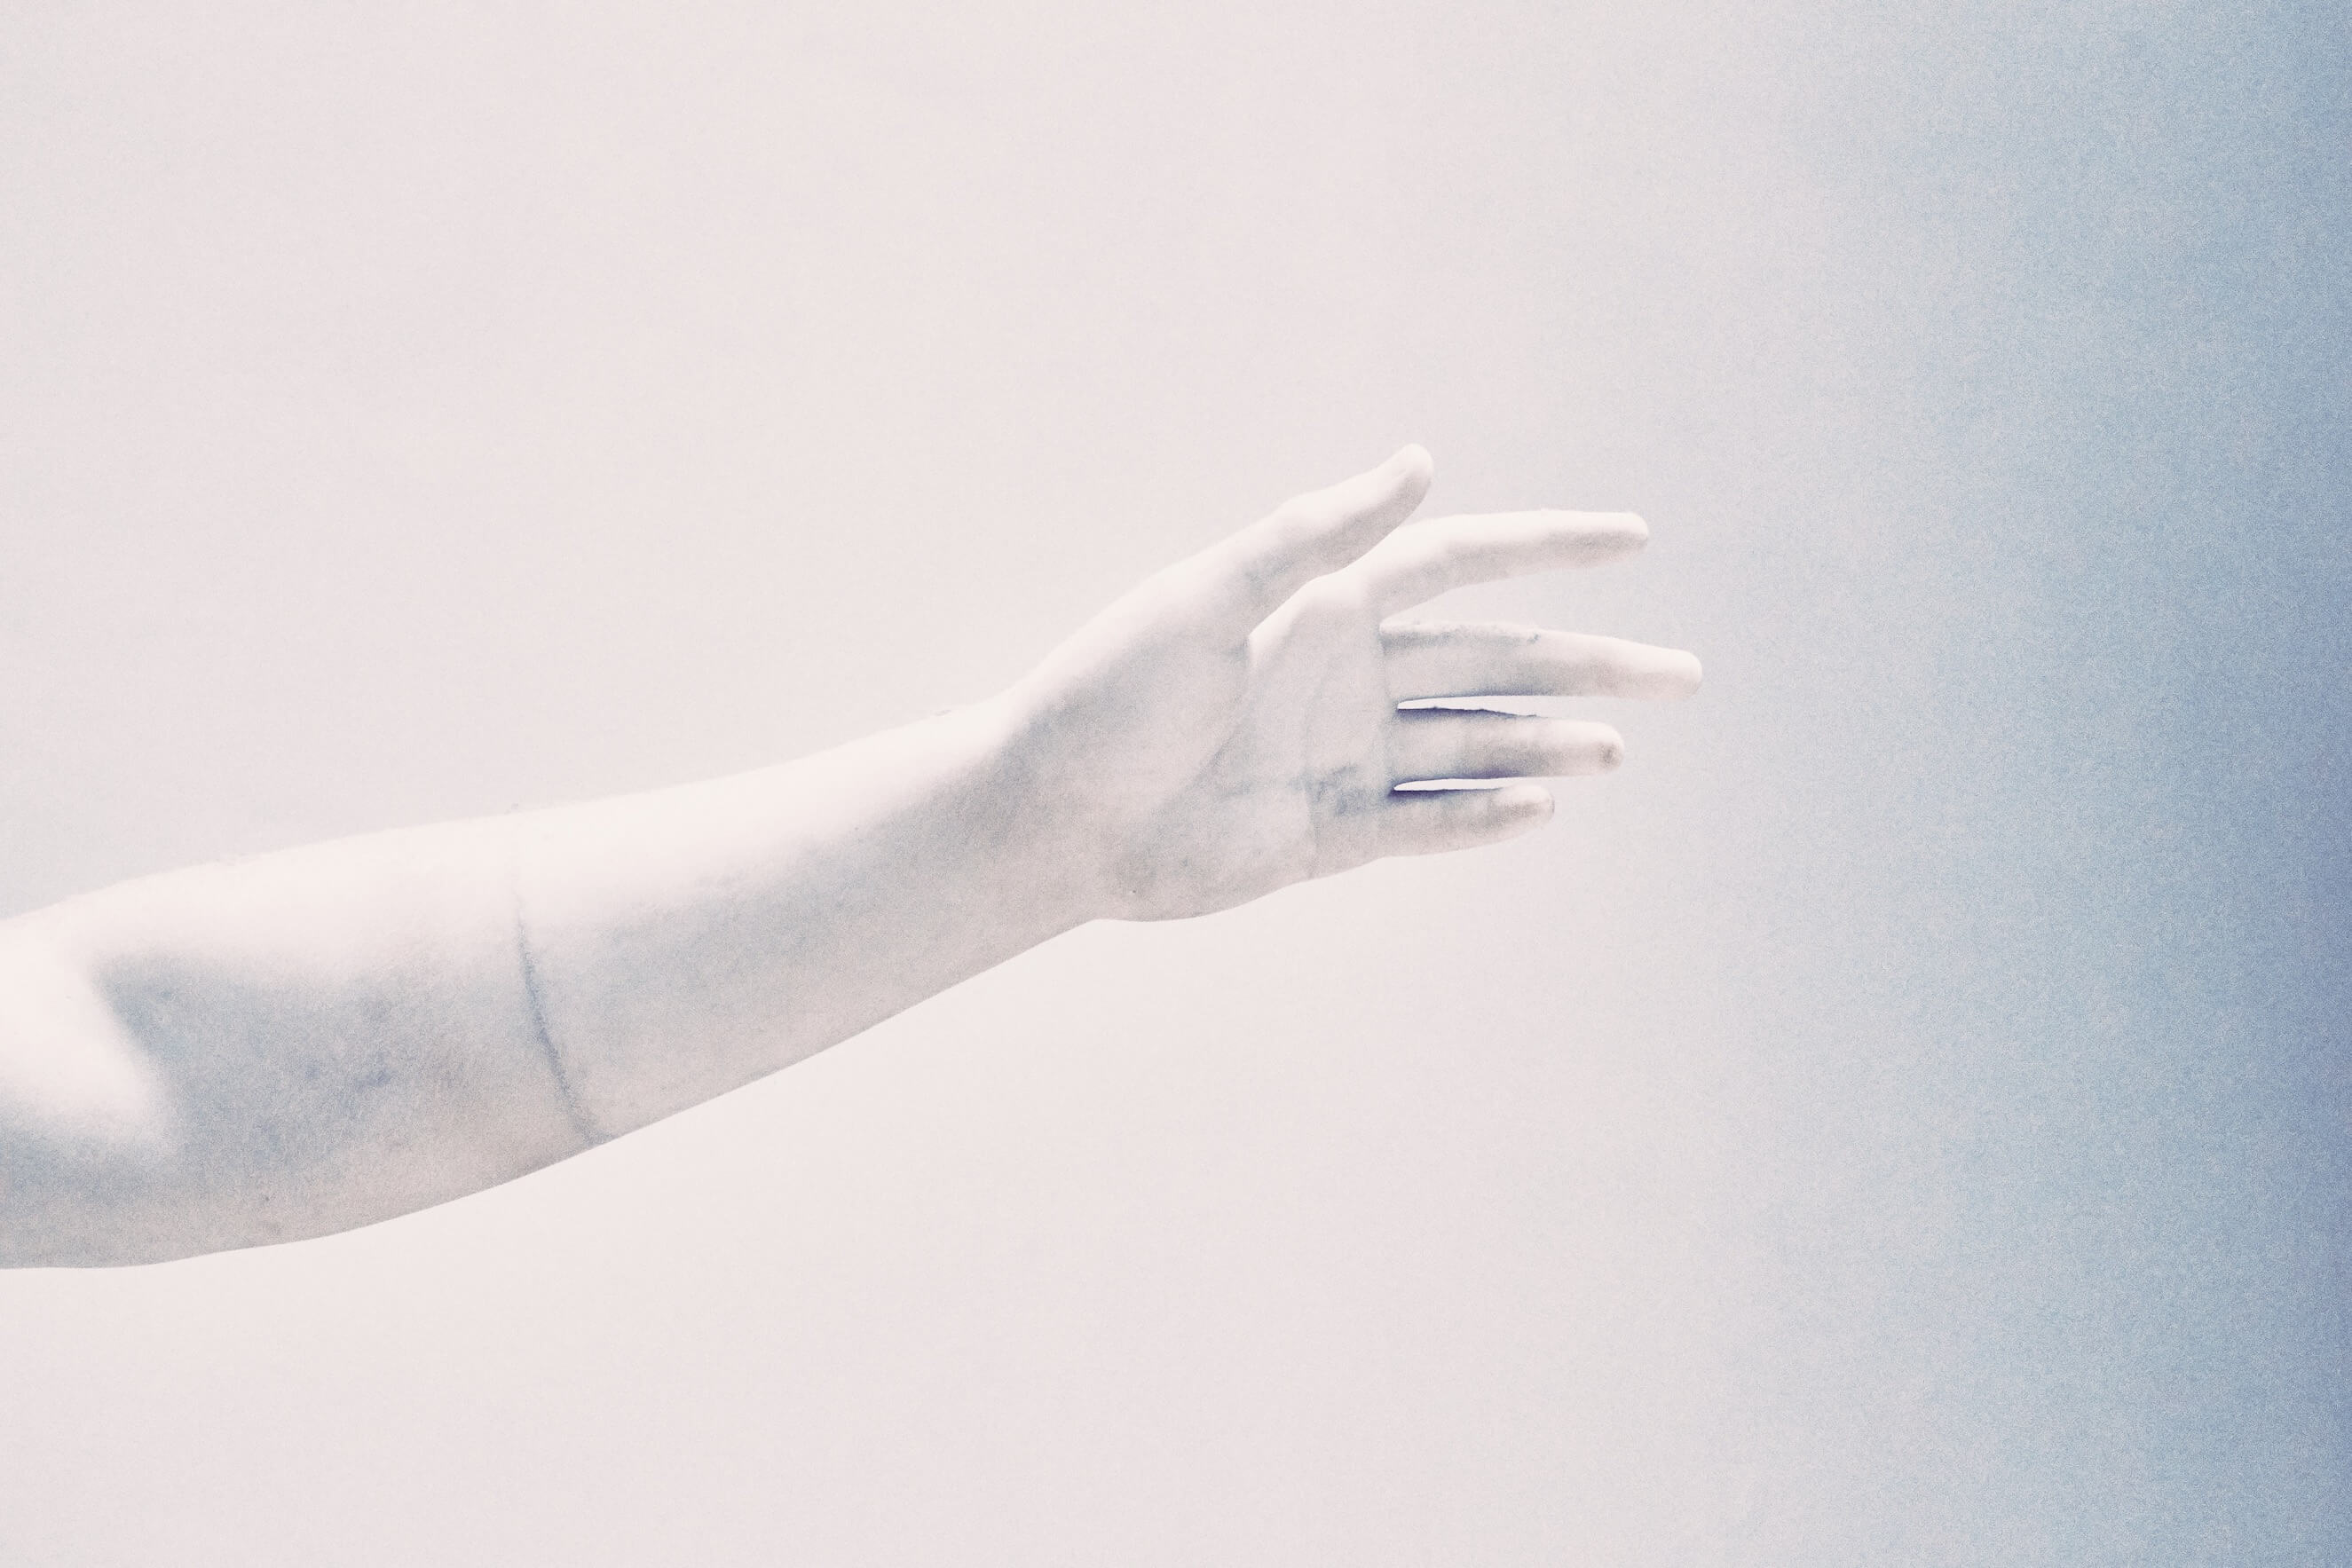 A marble sculpture of an arm extended, hand outstretched